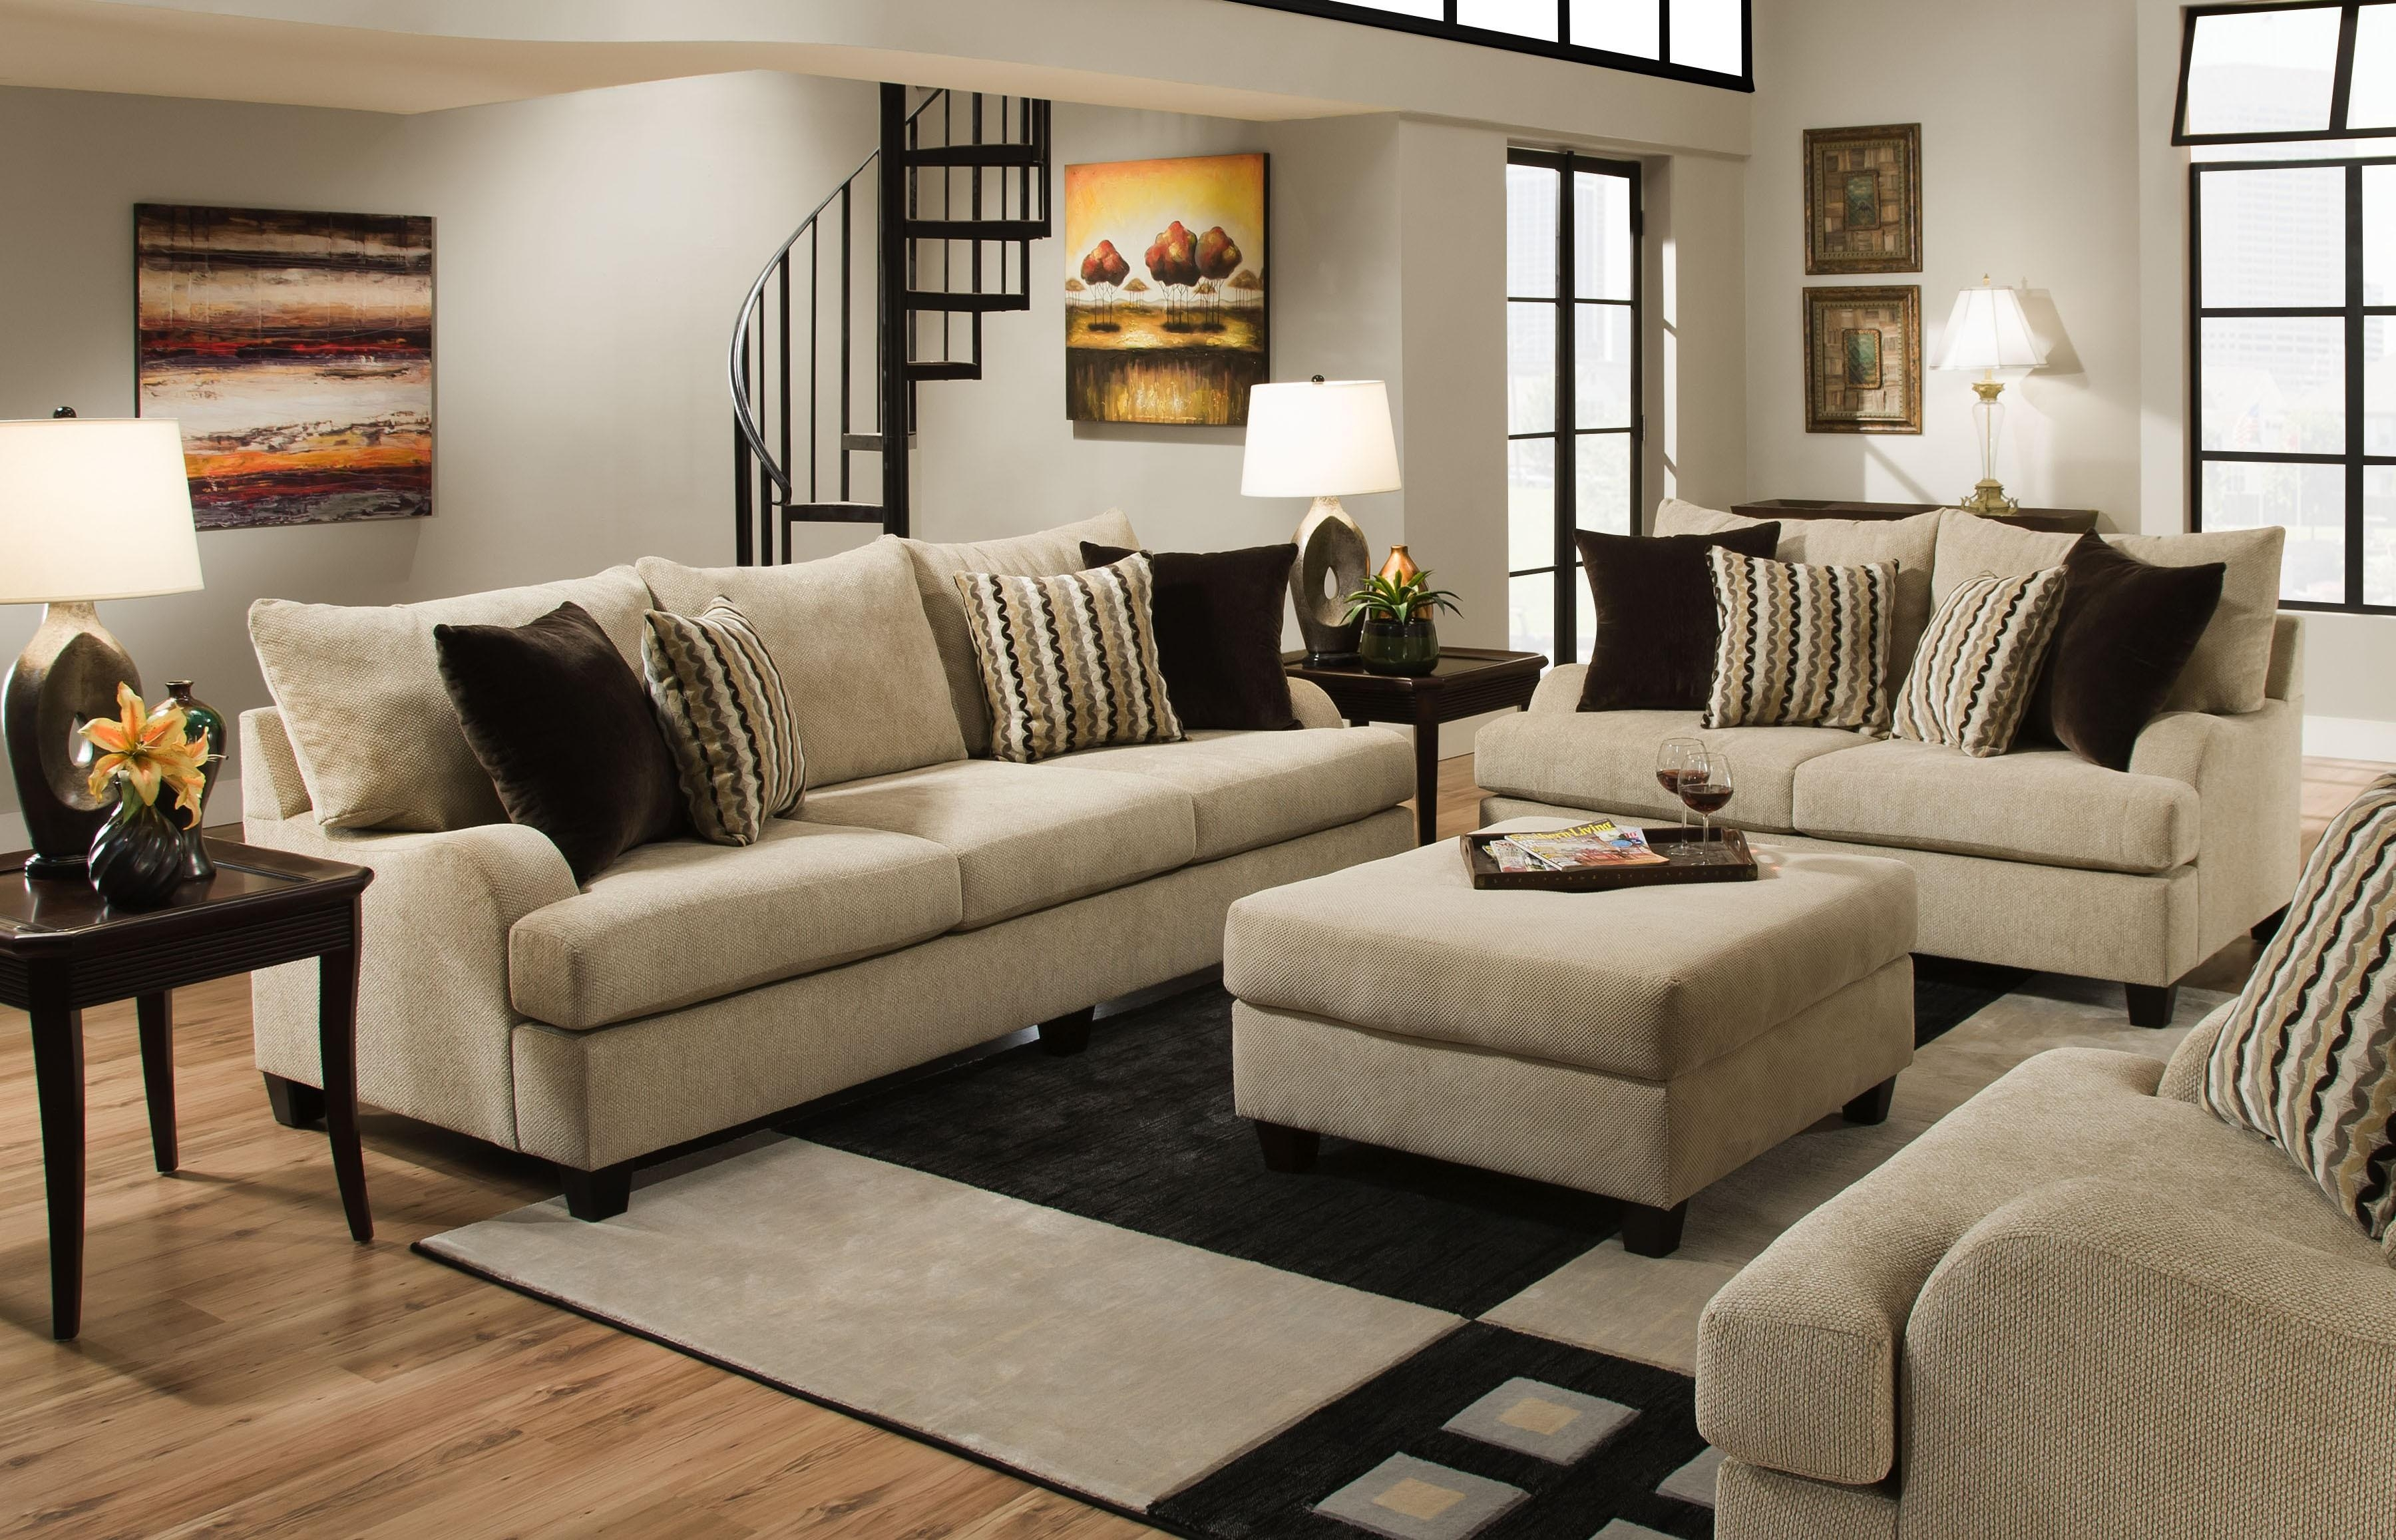 Trinidad Chenile Living Room Set – Sofa & Loveseat | Orange County Pertaining To Sofa Orange County (Image 19 of 20)